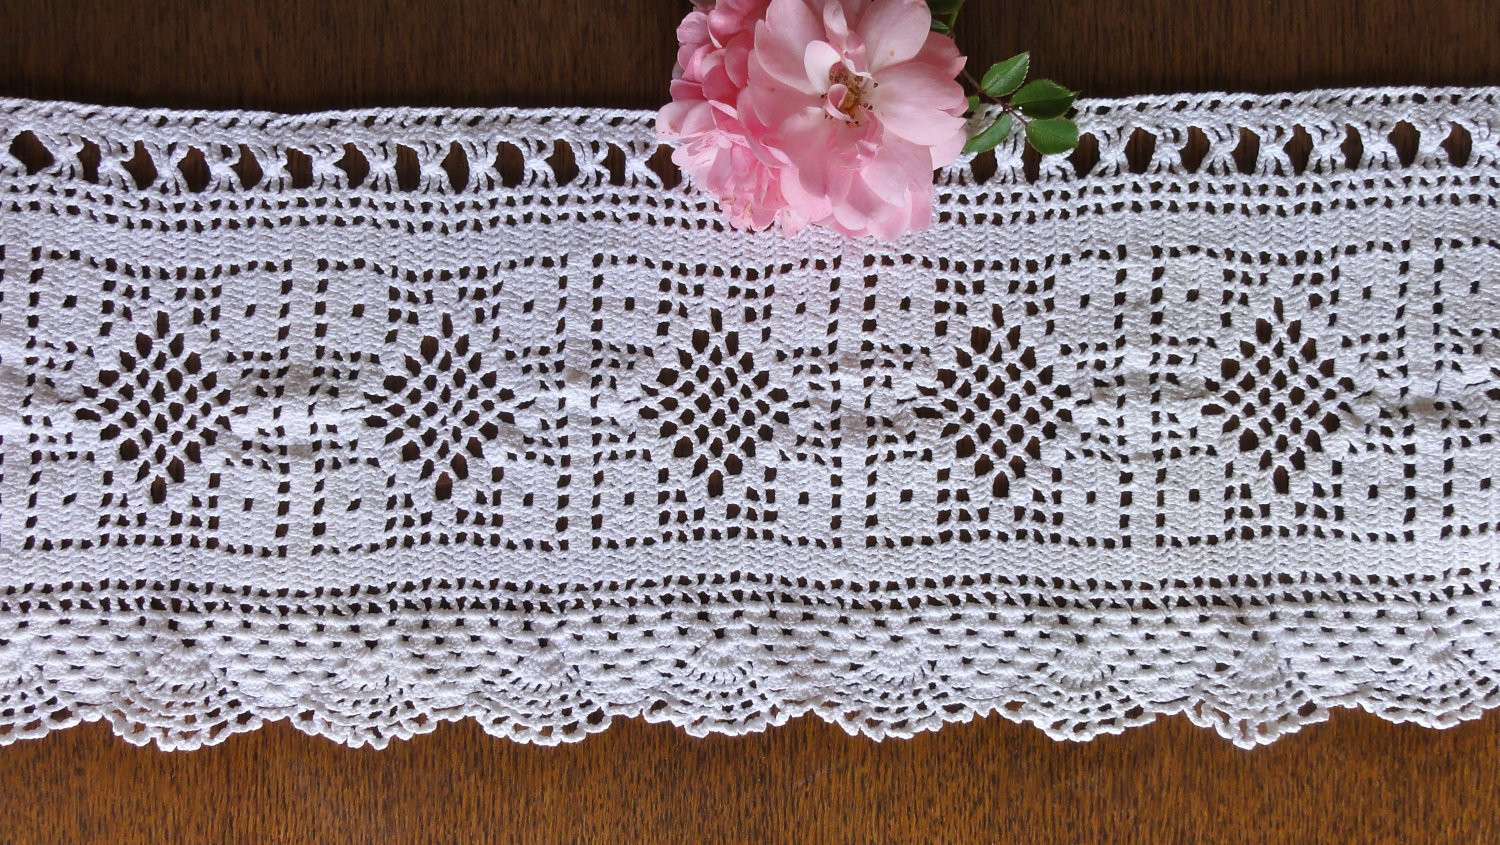 Awesome Vintage Crochet Curtain White Filet Valance by Oldamsterdam Crochet Curtain Patterns Of Contemporary 49 Ideas Crochet Curtain Patterns